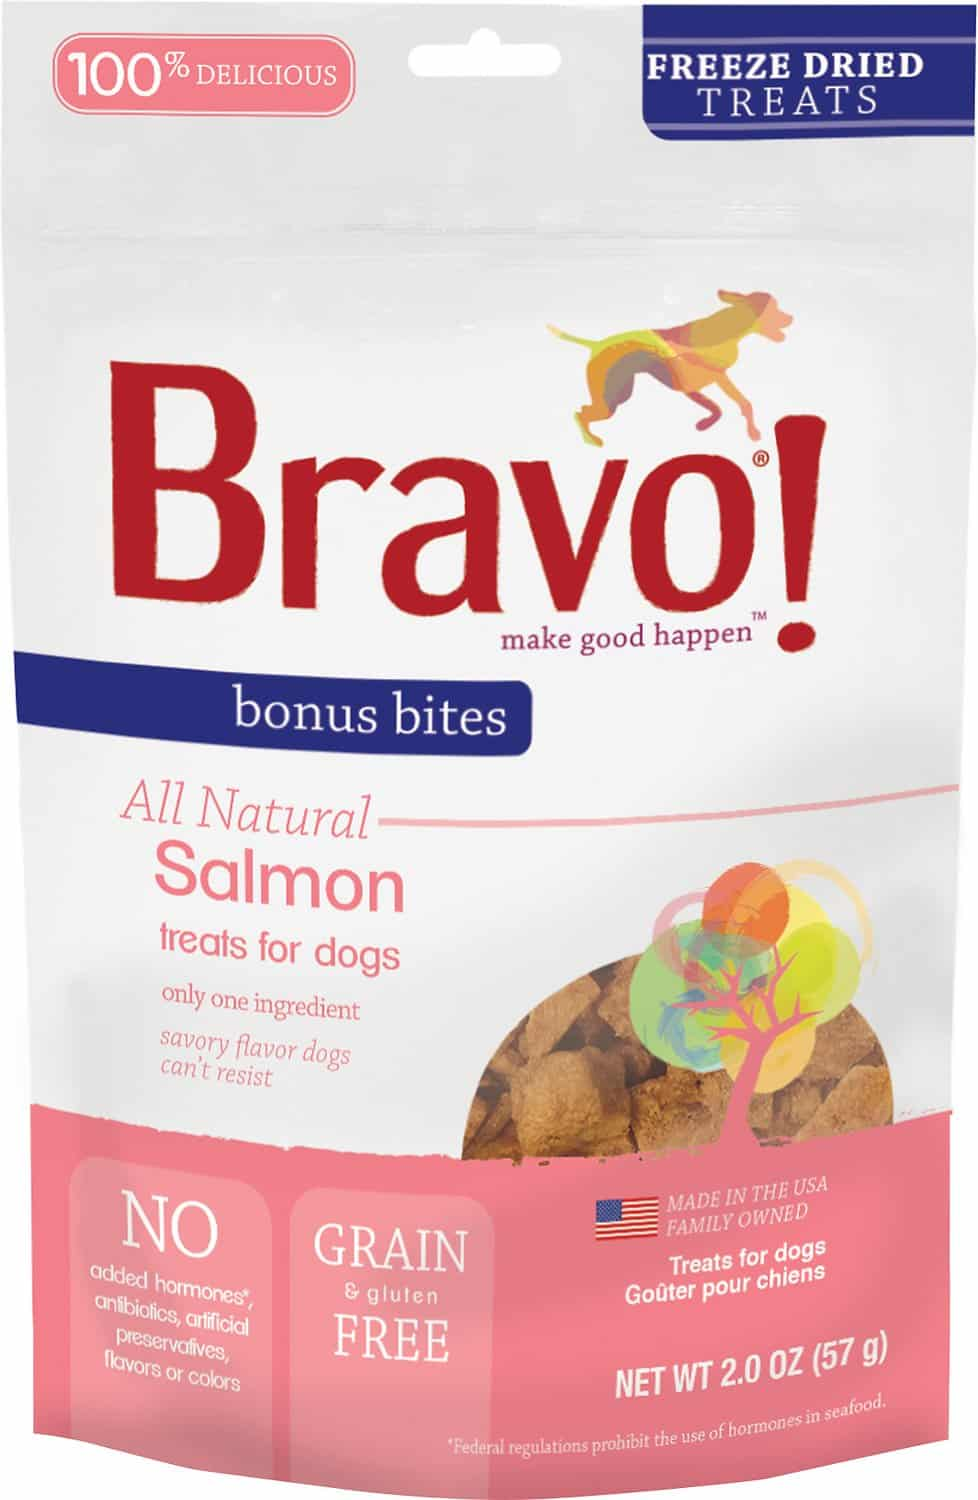 Bravo Dog Food Review 2021: Best Raw Pet Food? 17